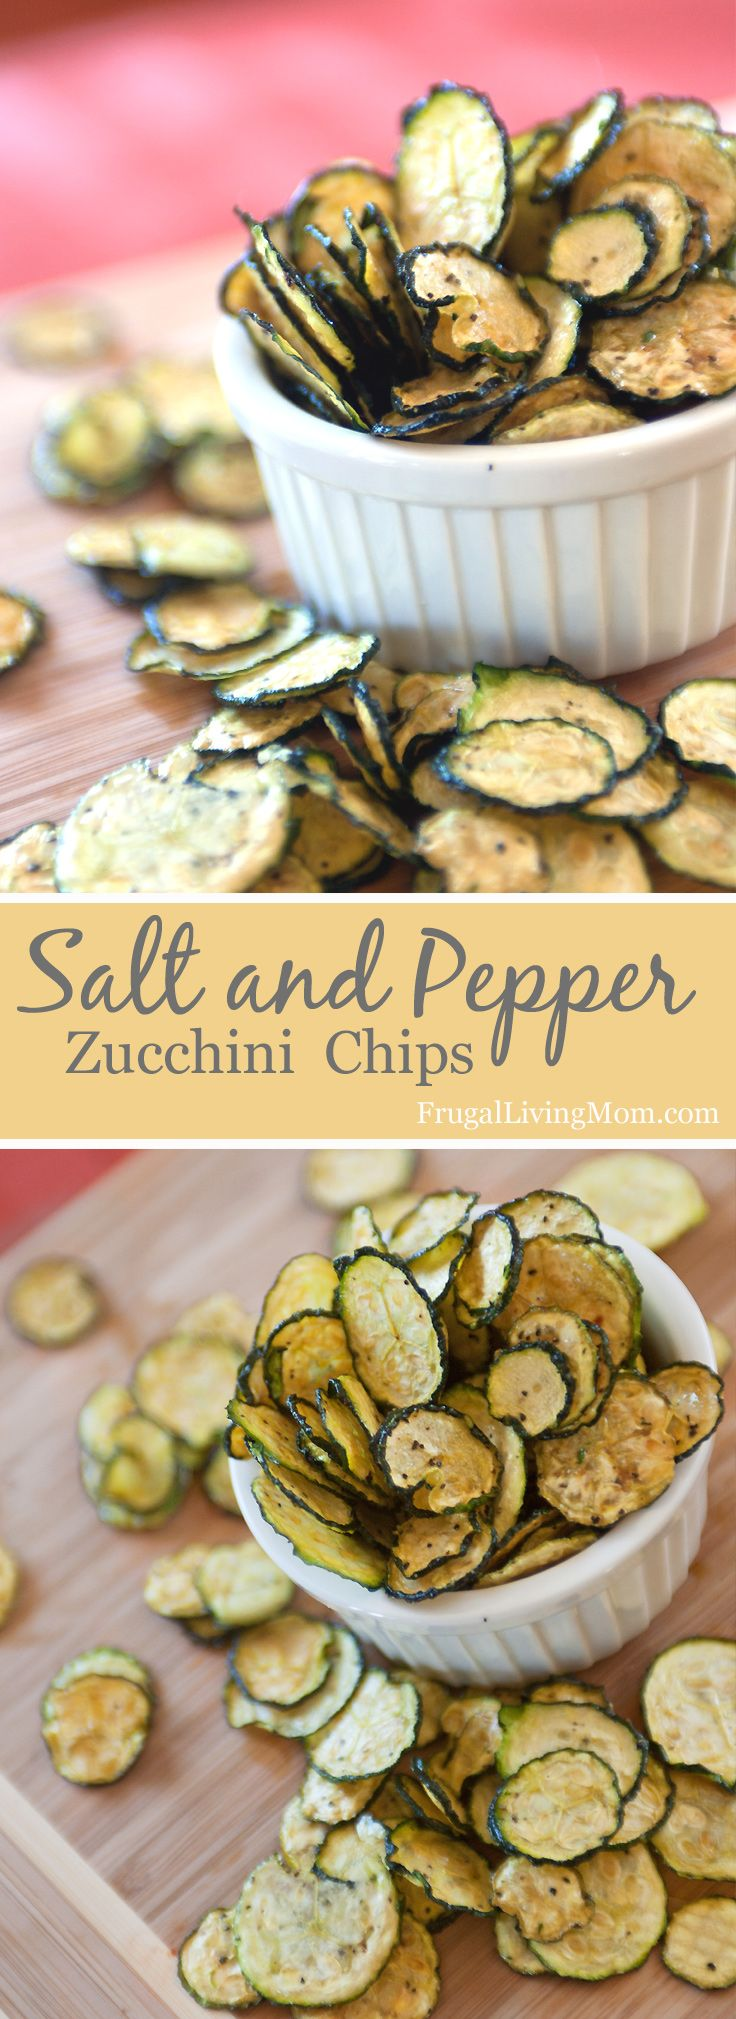 Oh MY Goodness. These zucchini chips are SO good. Full of flavor, and just a little spicy because of the pepper. Amazingly easy to make, too! Would be perfect with a homemade garlic dip